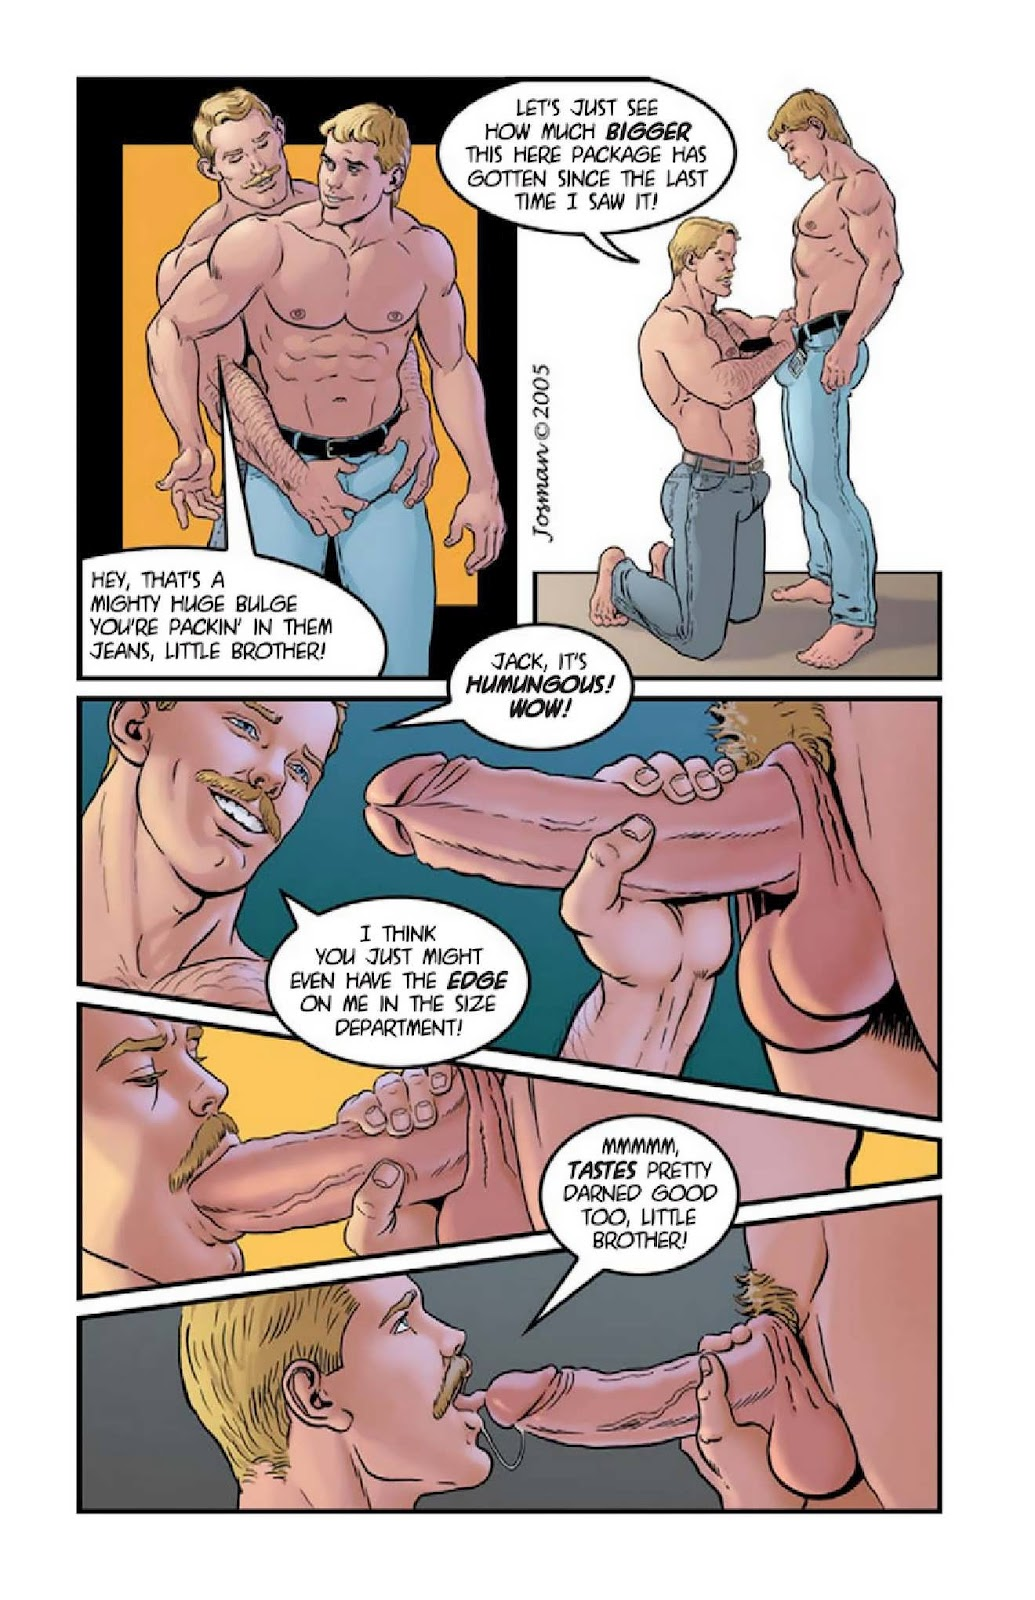 Gm Comics My Wild  Raunchy Son - Chaptert 01, 02 And 03-1339